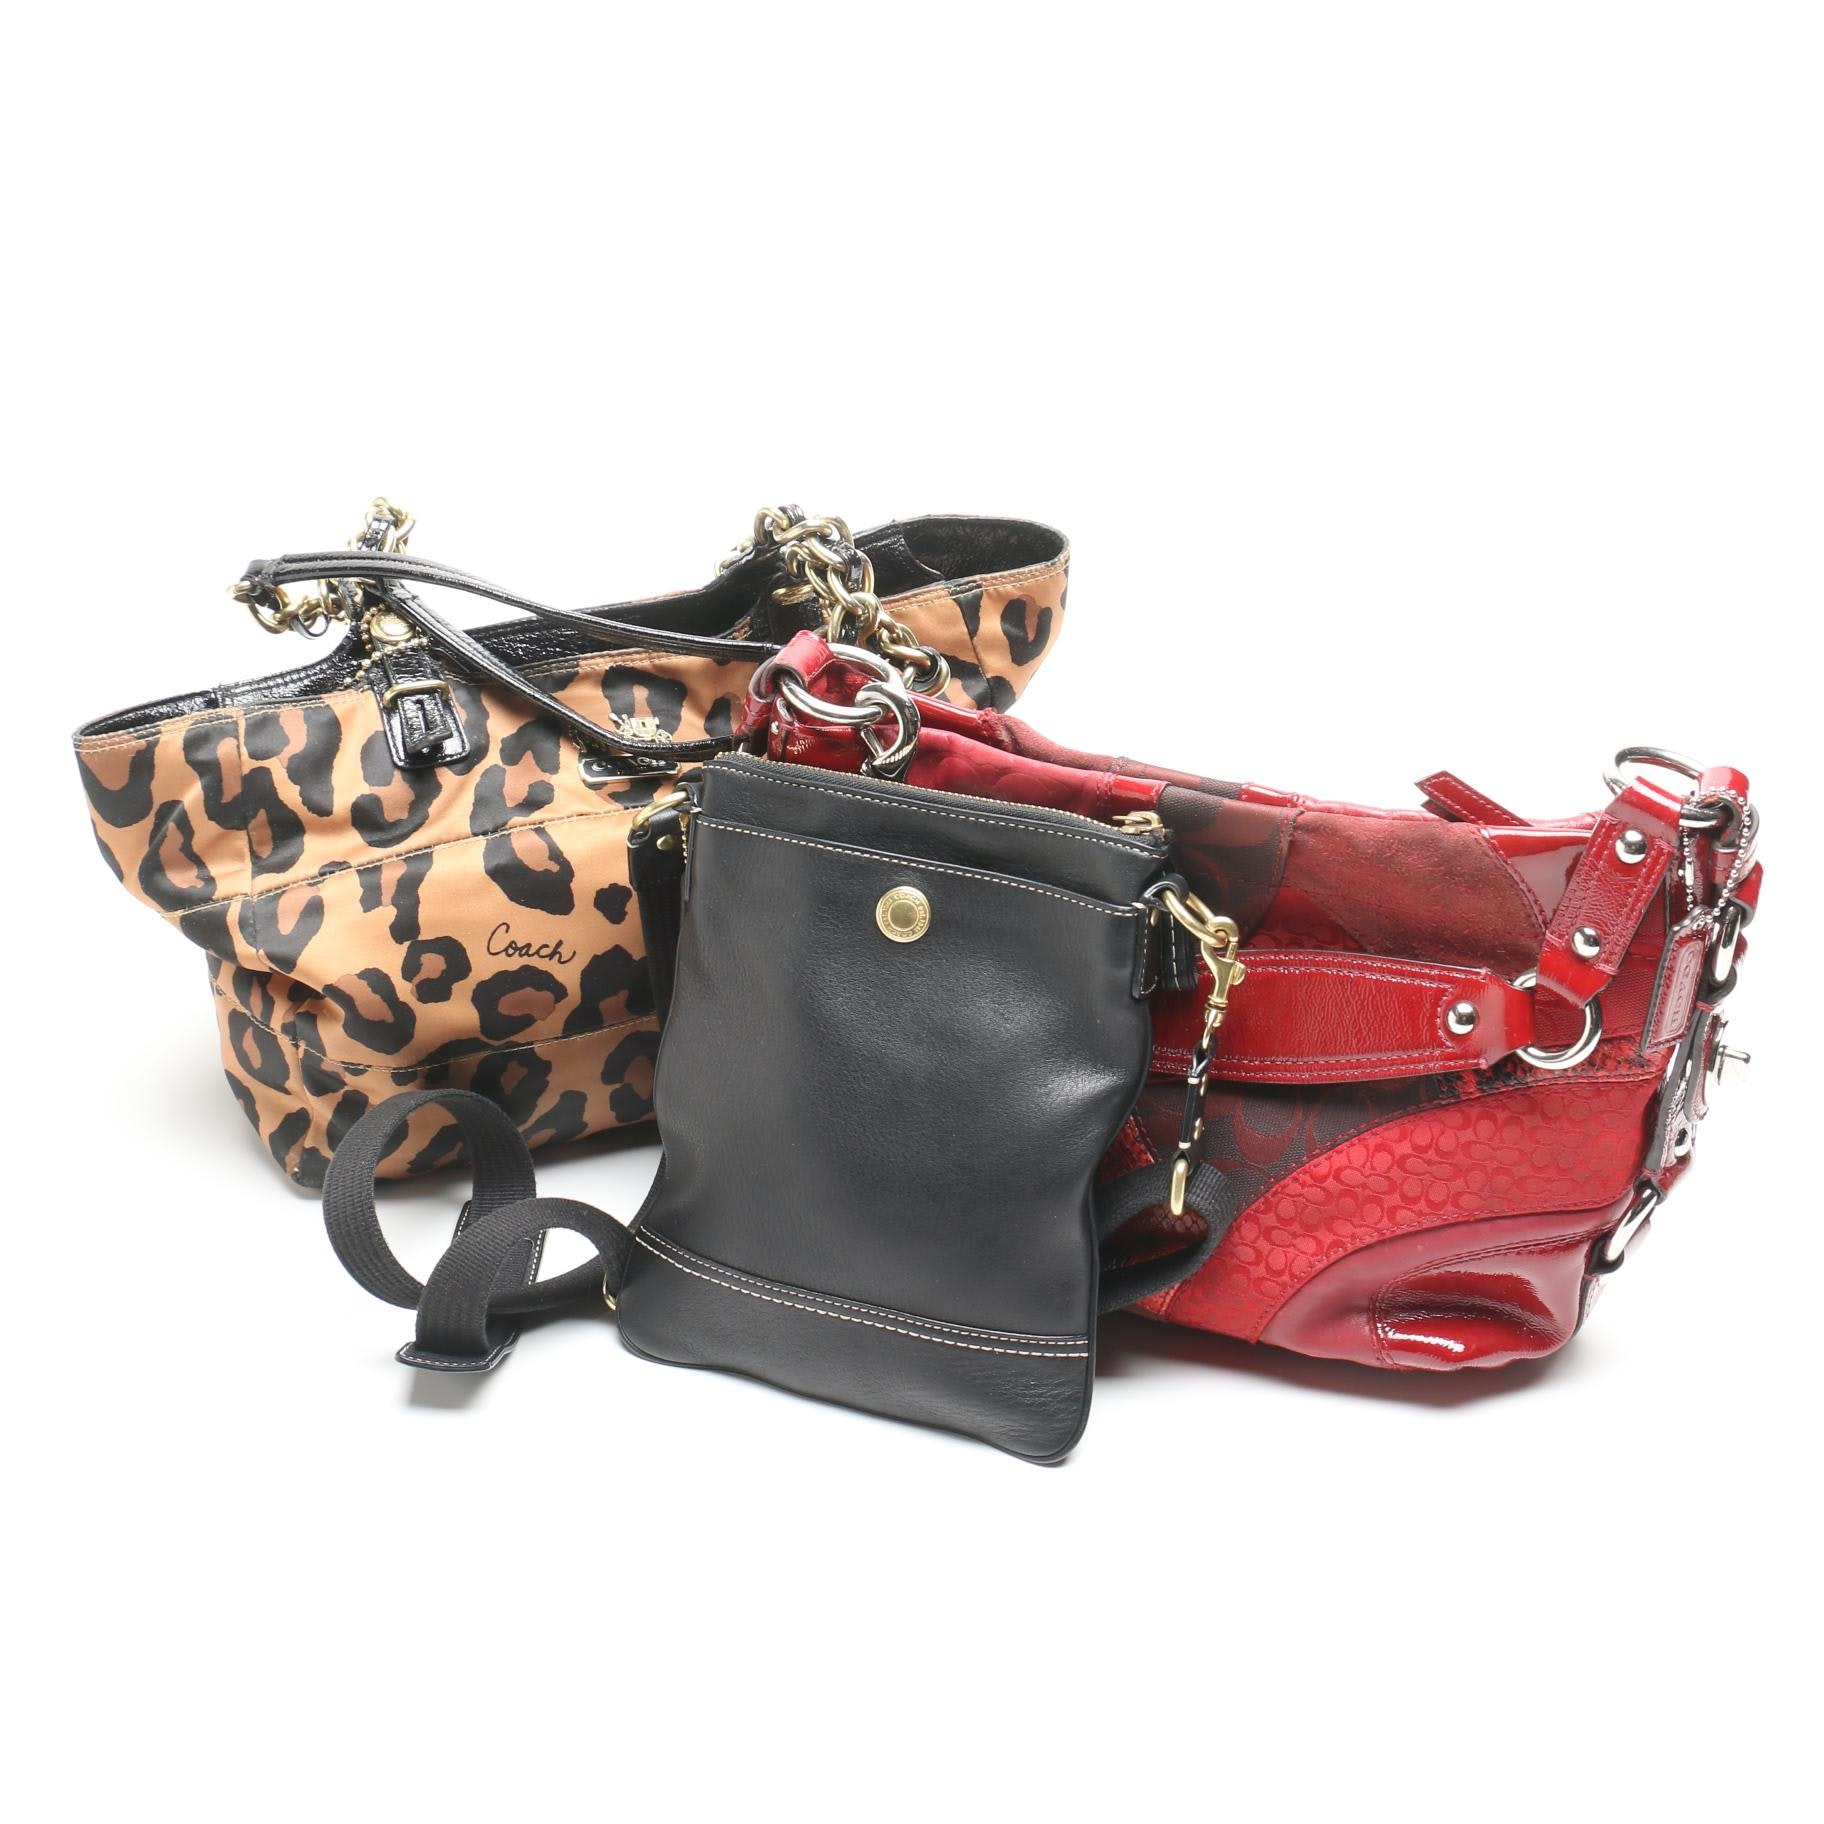 Coach Madison Leopard Print Nylon Tote and Other Handbags